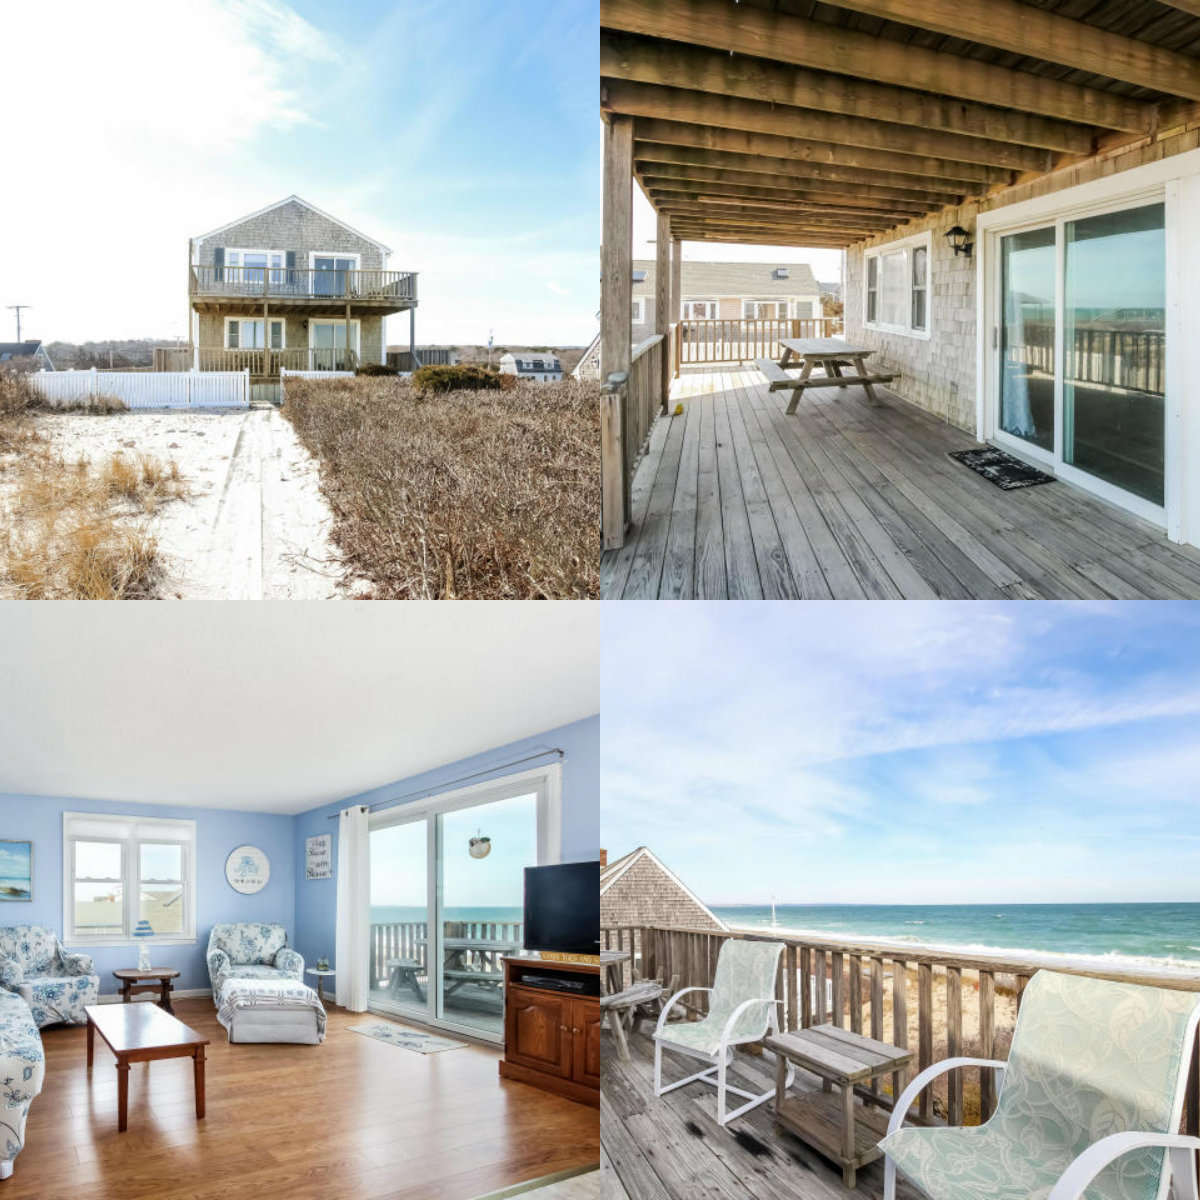 Images of 129 North Shore Boulevard by Sandy Neck on Cape Cod MA